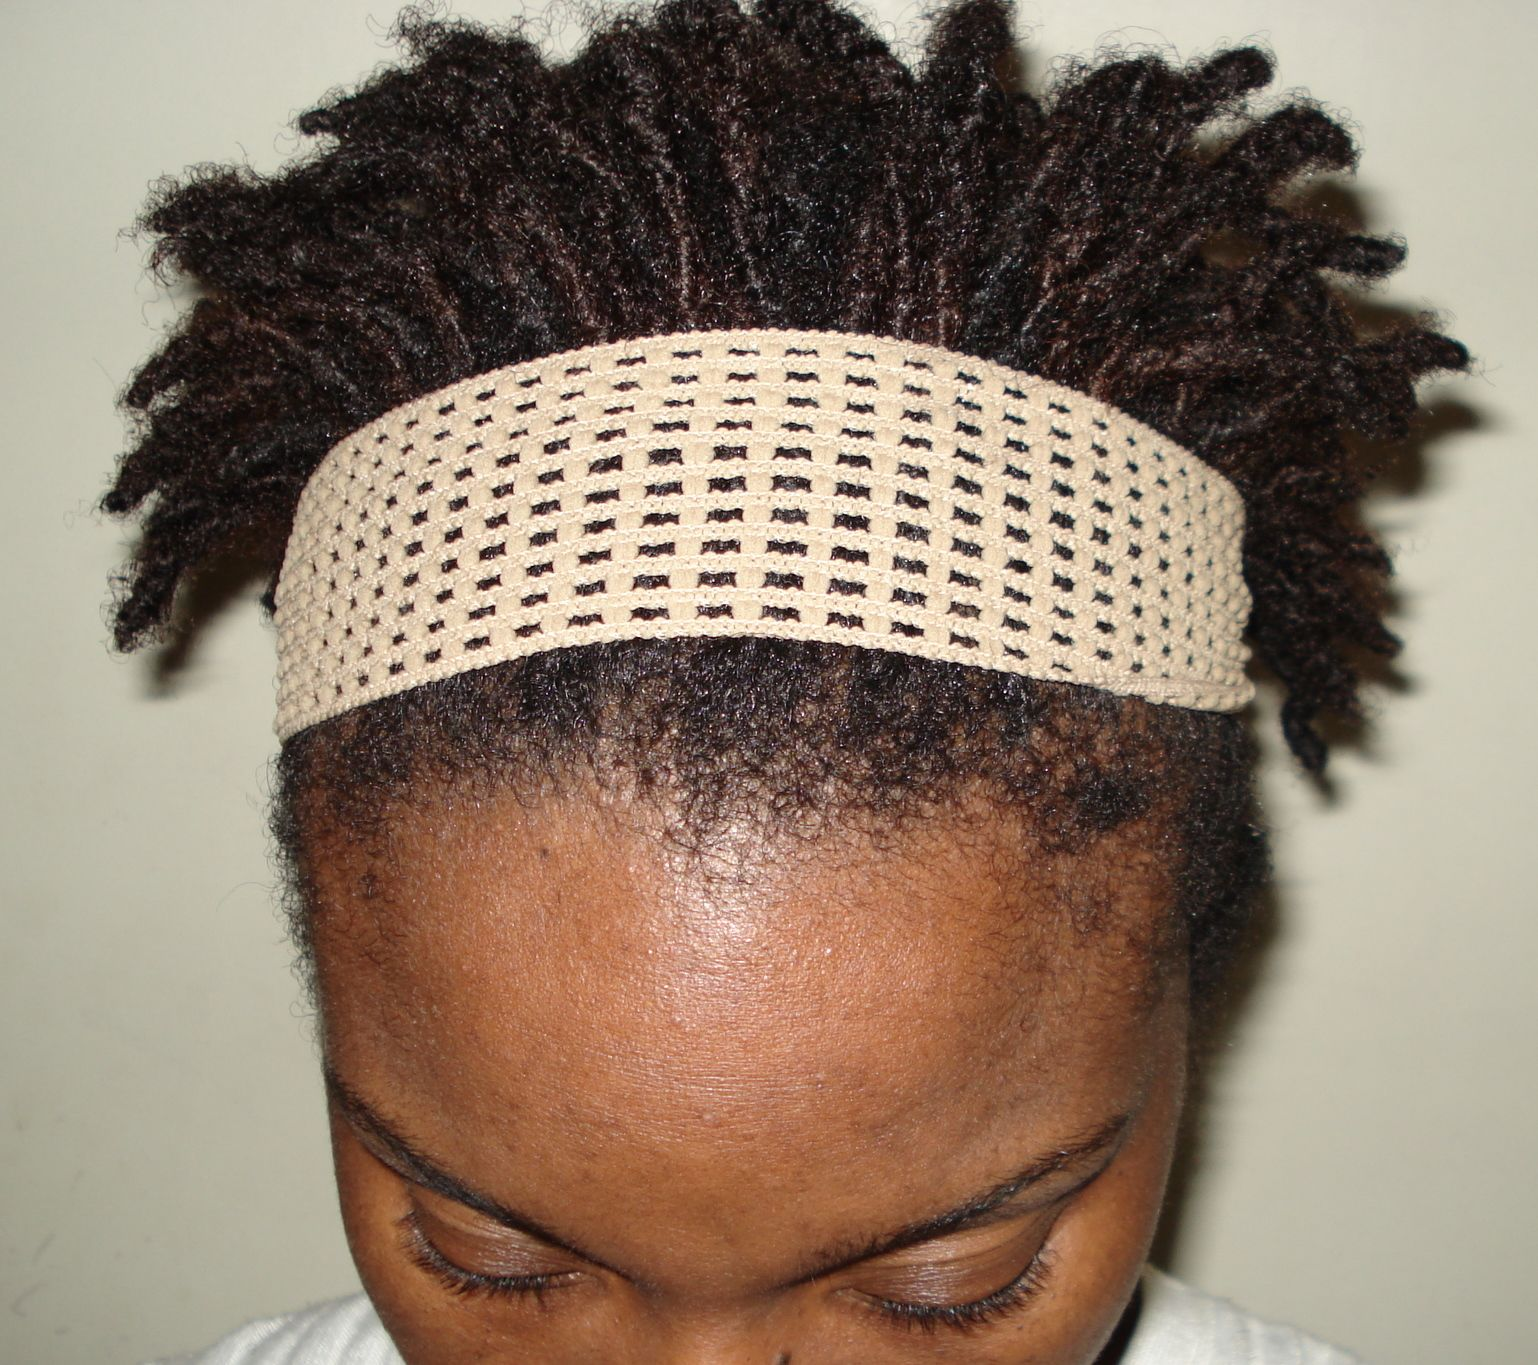 really short starter locs, but with a little accessorizing